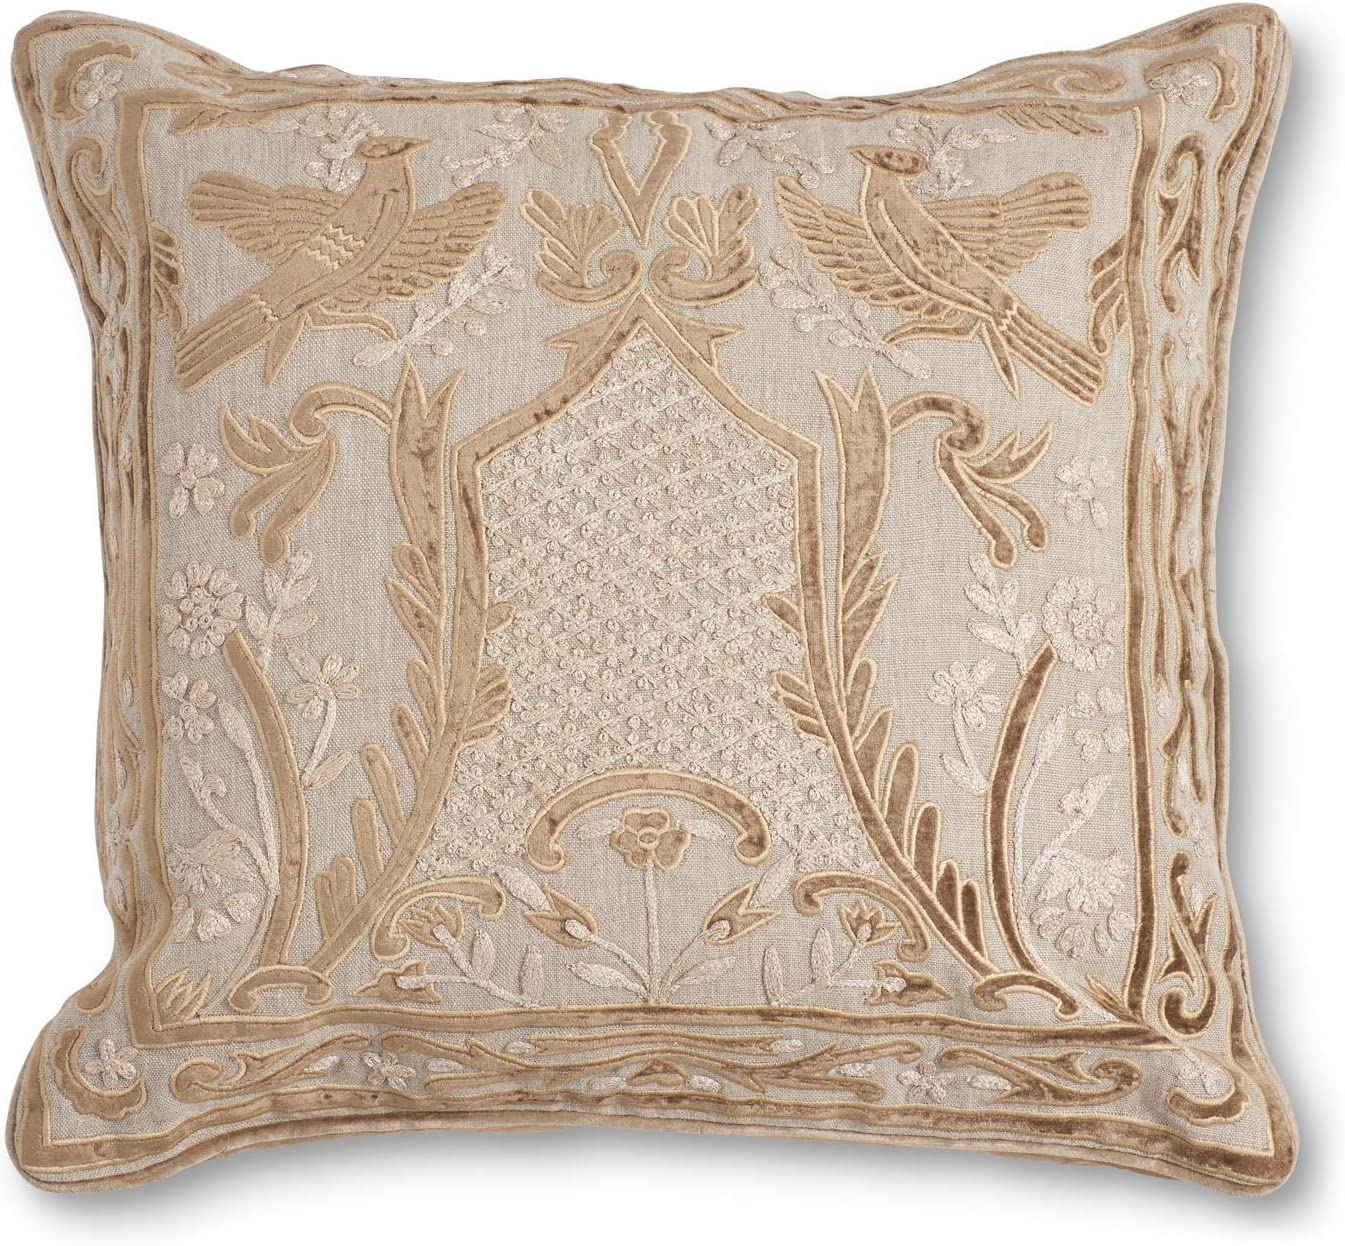 K K Interiors 16095a 20 Inch Camel Linen And Velvet Embroidered Pillow Tan Home Kitchen